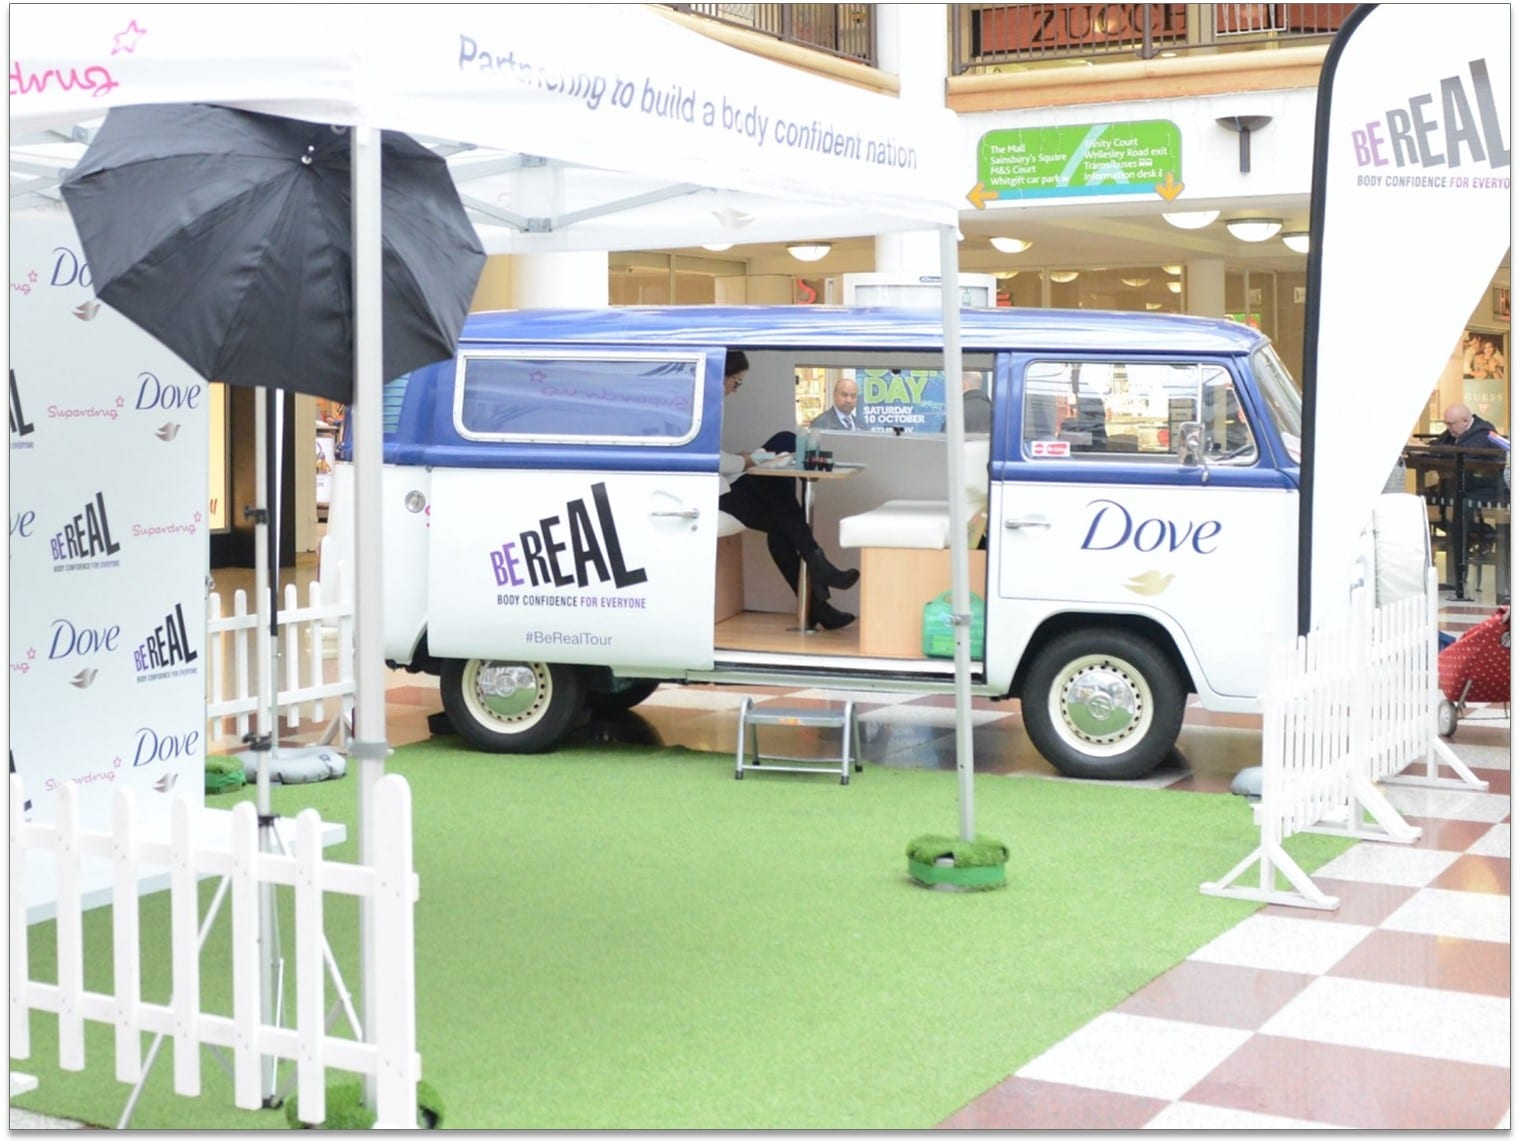 VW Camper on promo tour